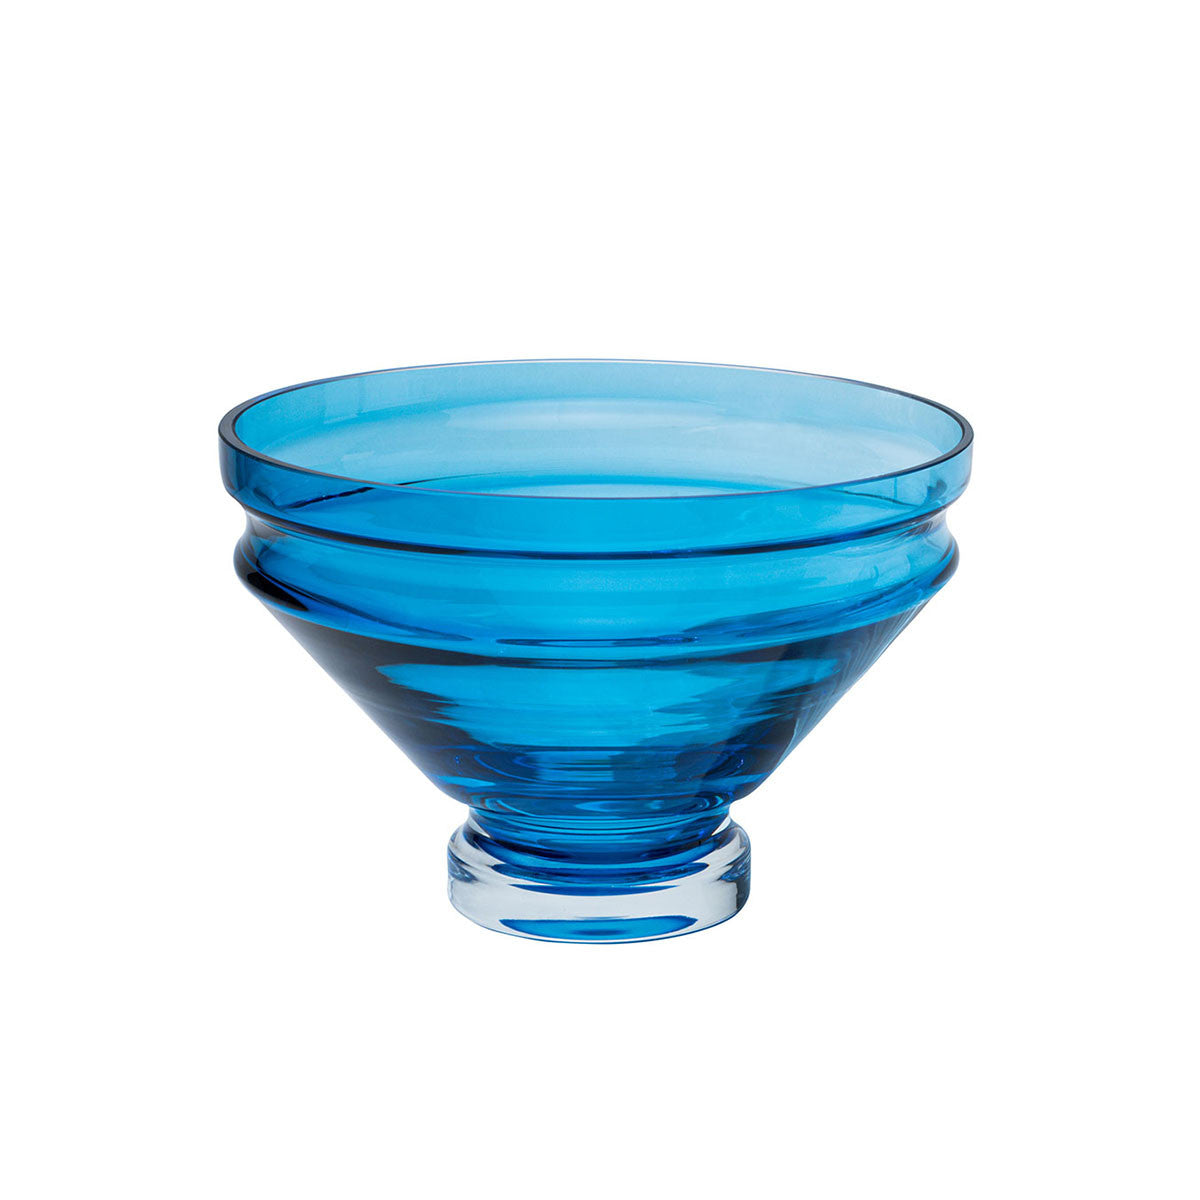 Raawii Blue Glass Bowl Small Relæ